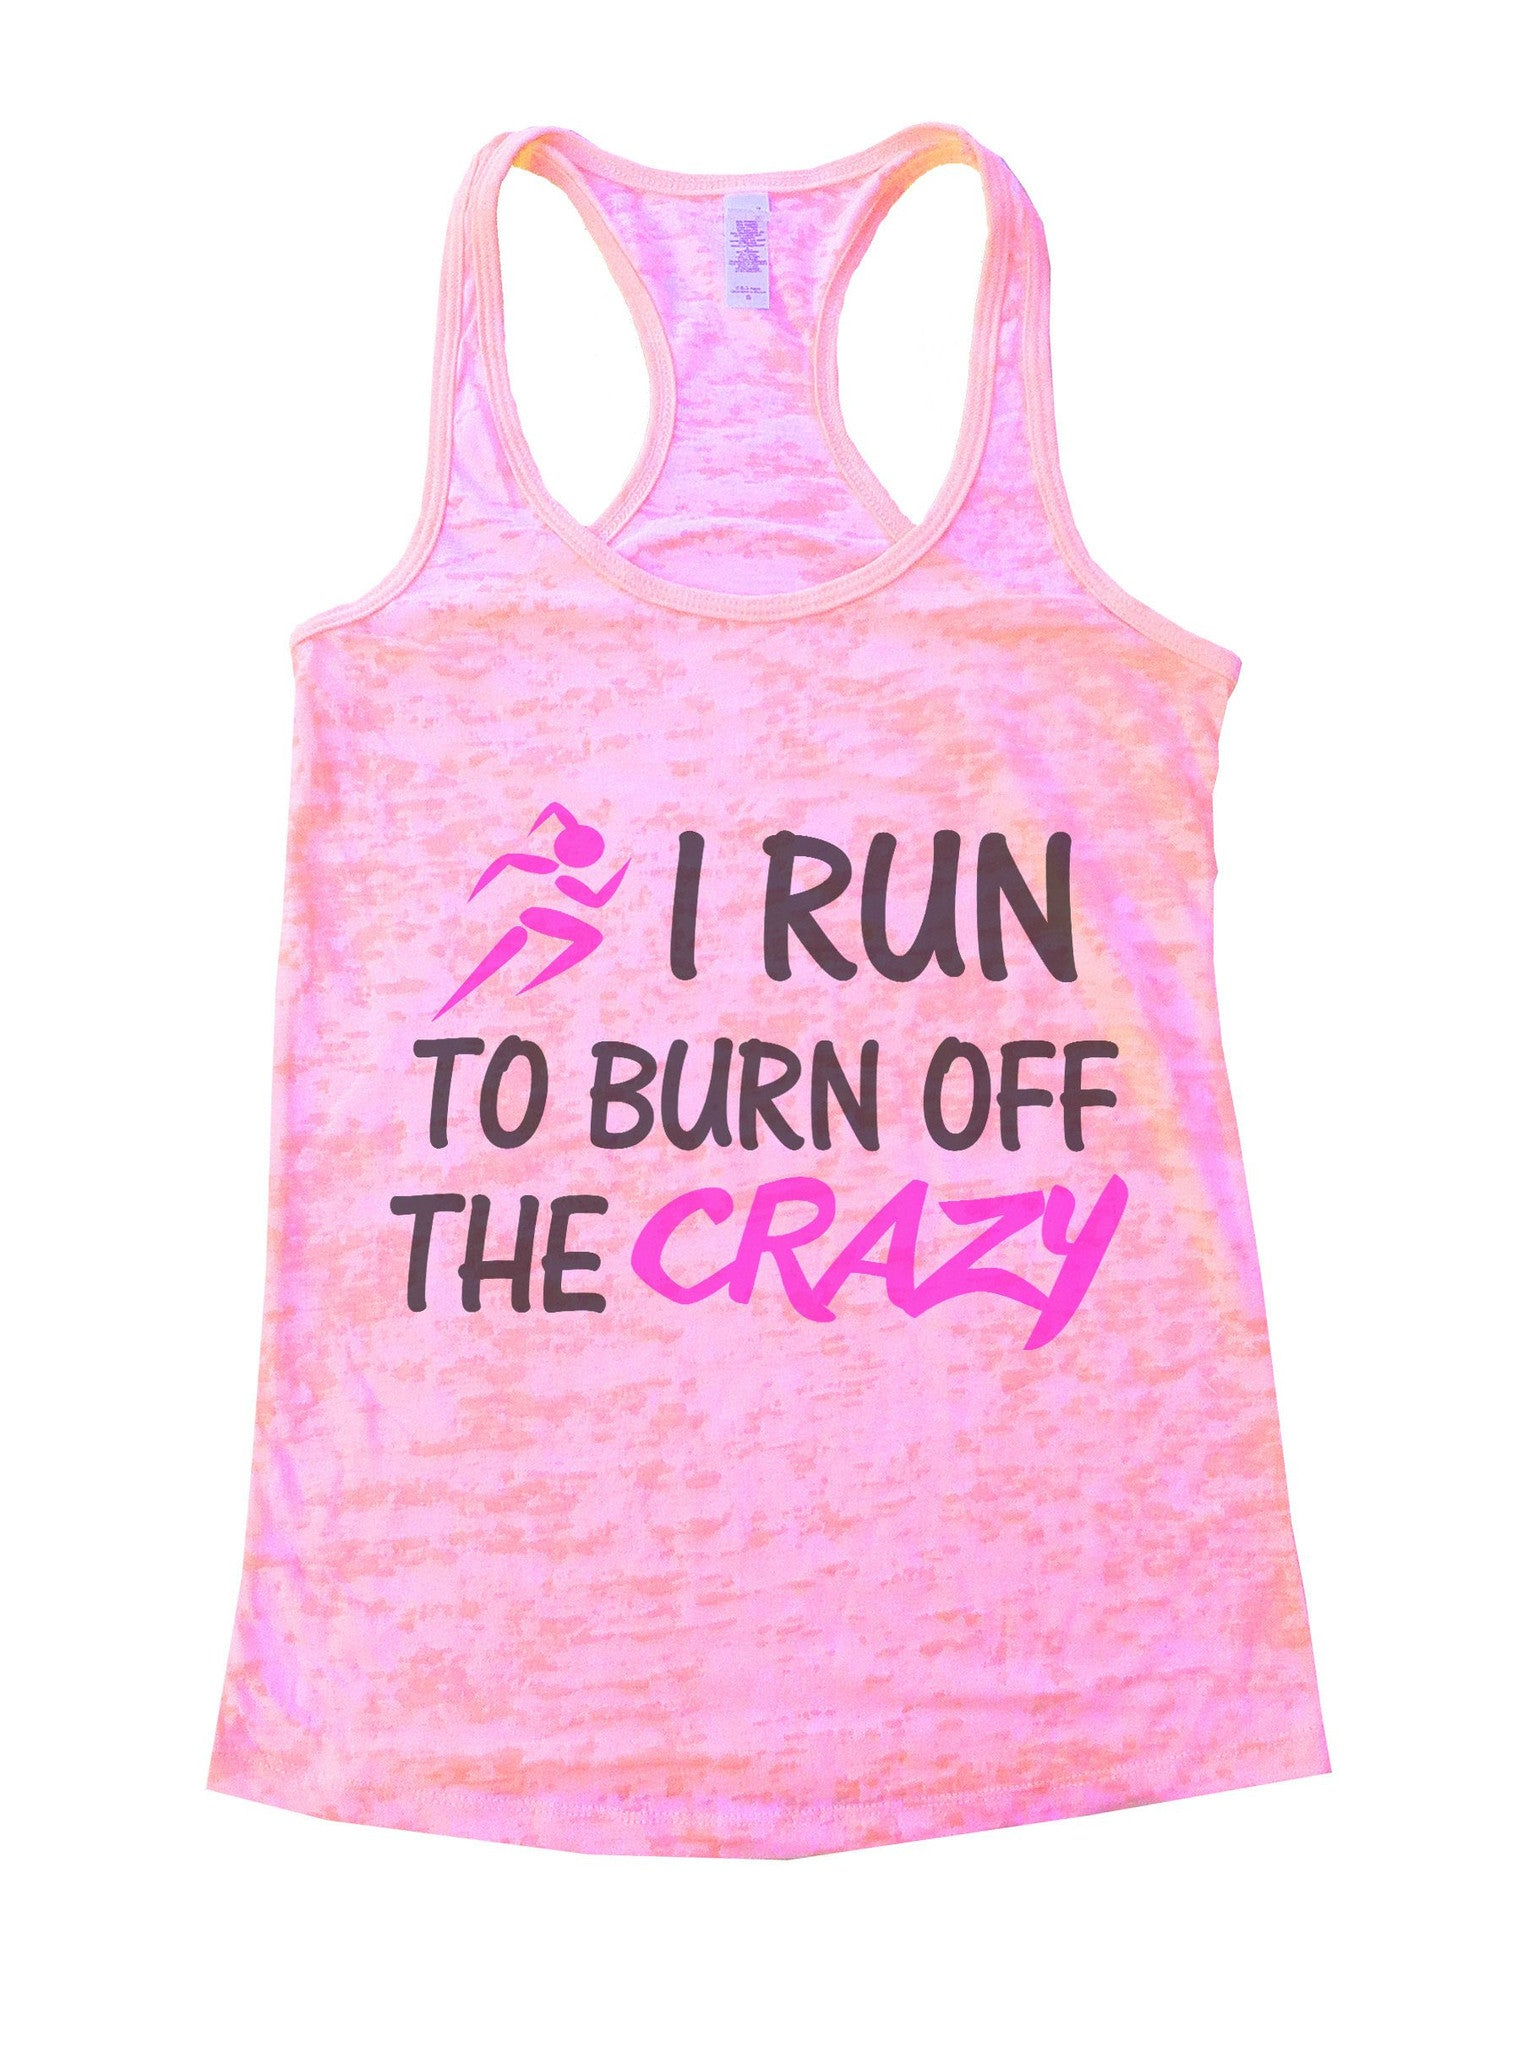 I Run To Burn Off The Crazy Burnout Tank Top By BurnoutTankTops.com - 623 - Funny Shirts Tank Tops Burnouts and Triblends  - 3